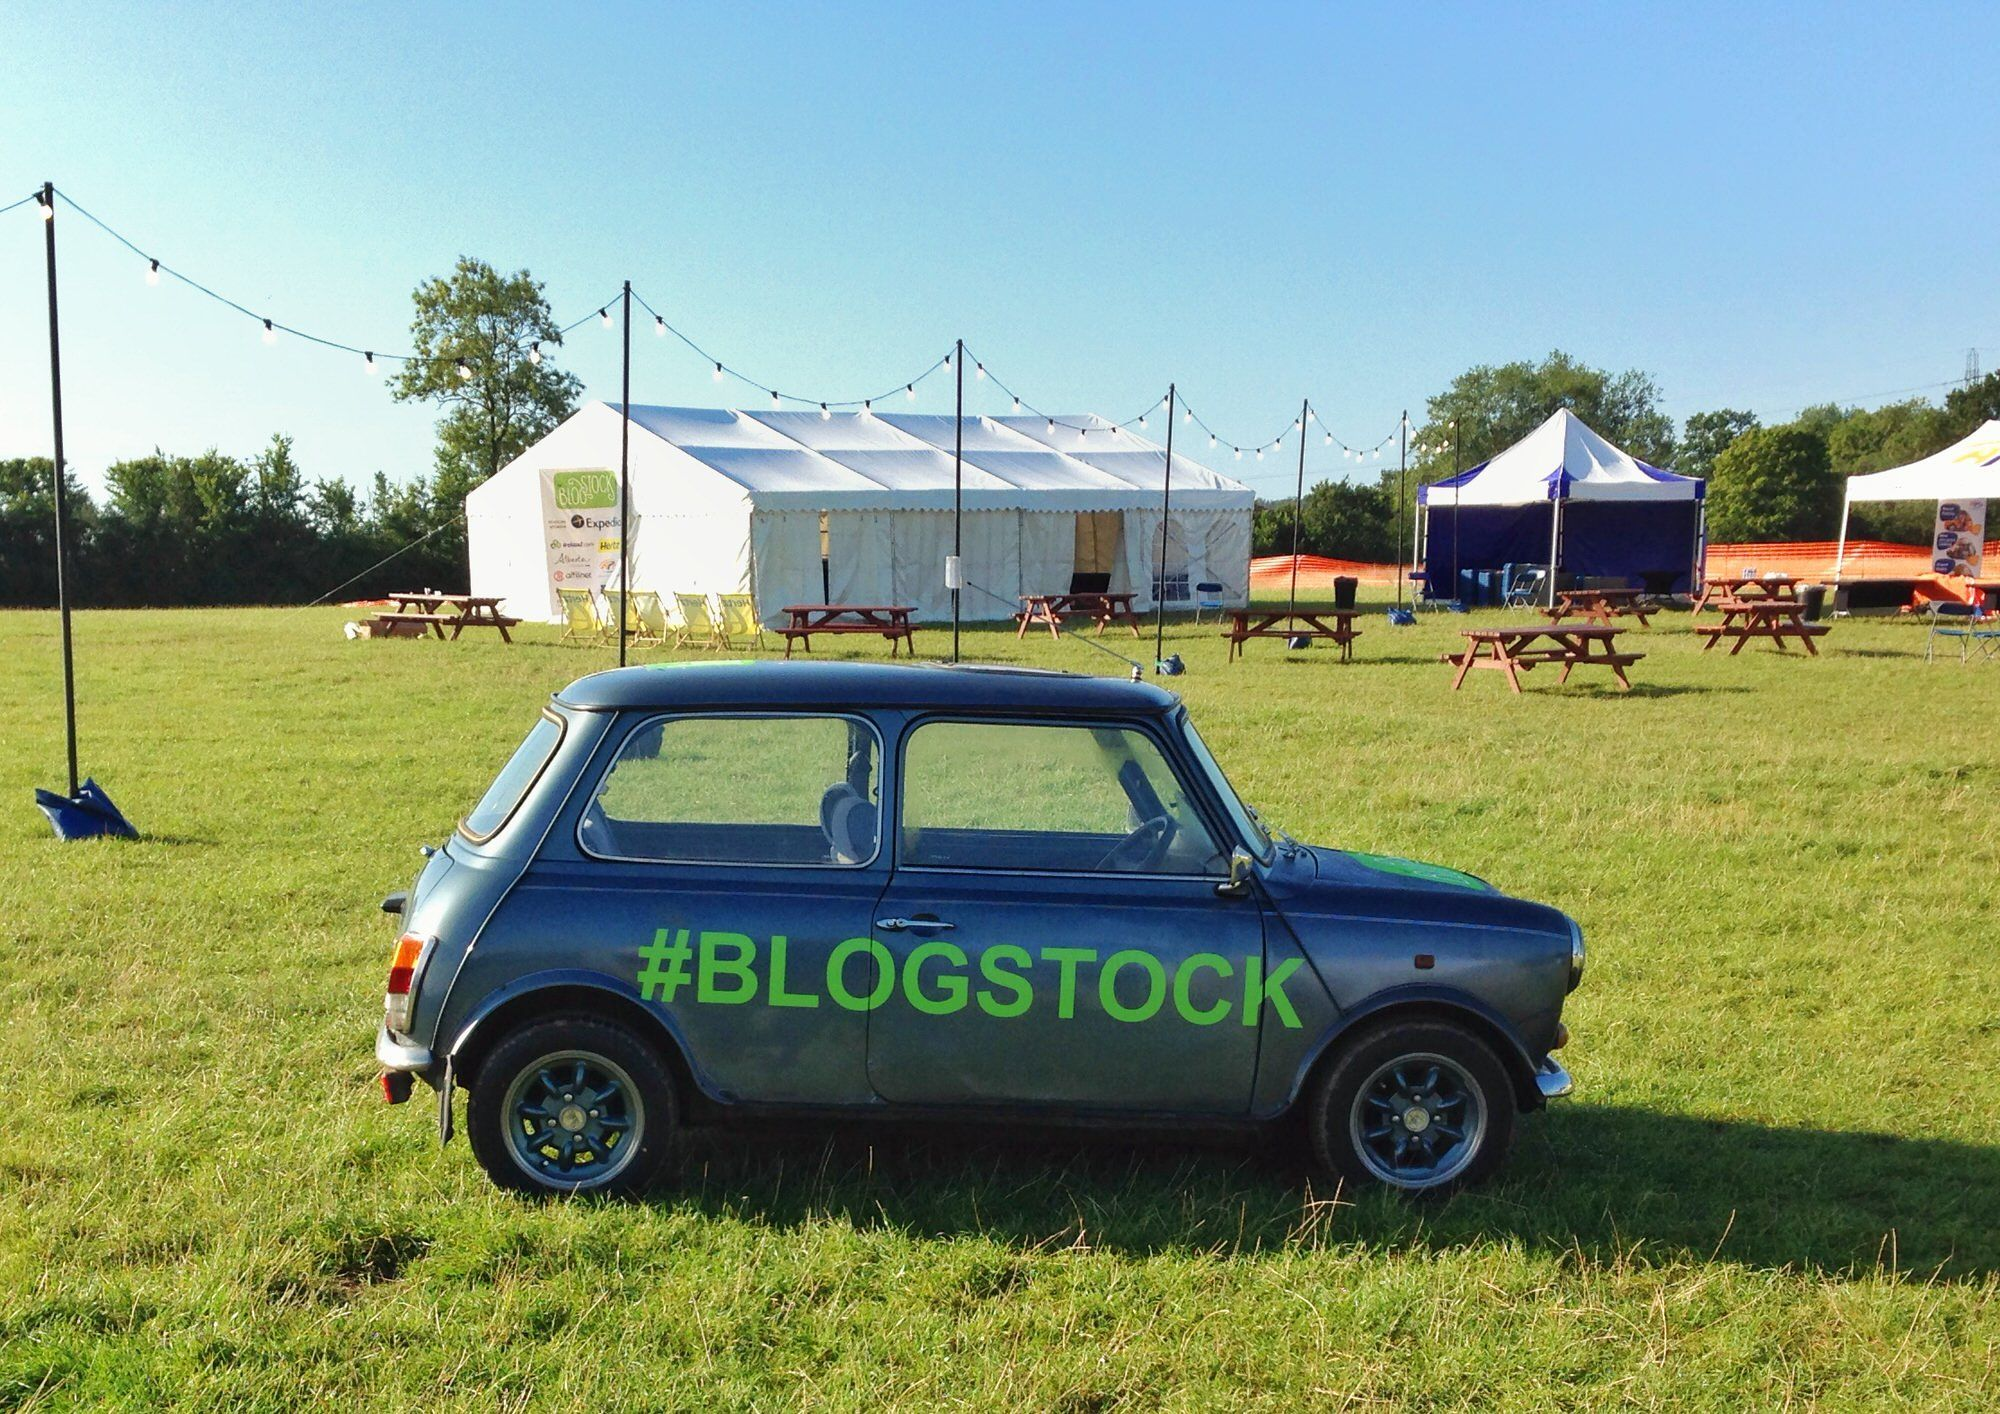 Blogstock festival near London UK